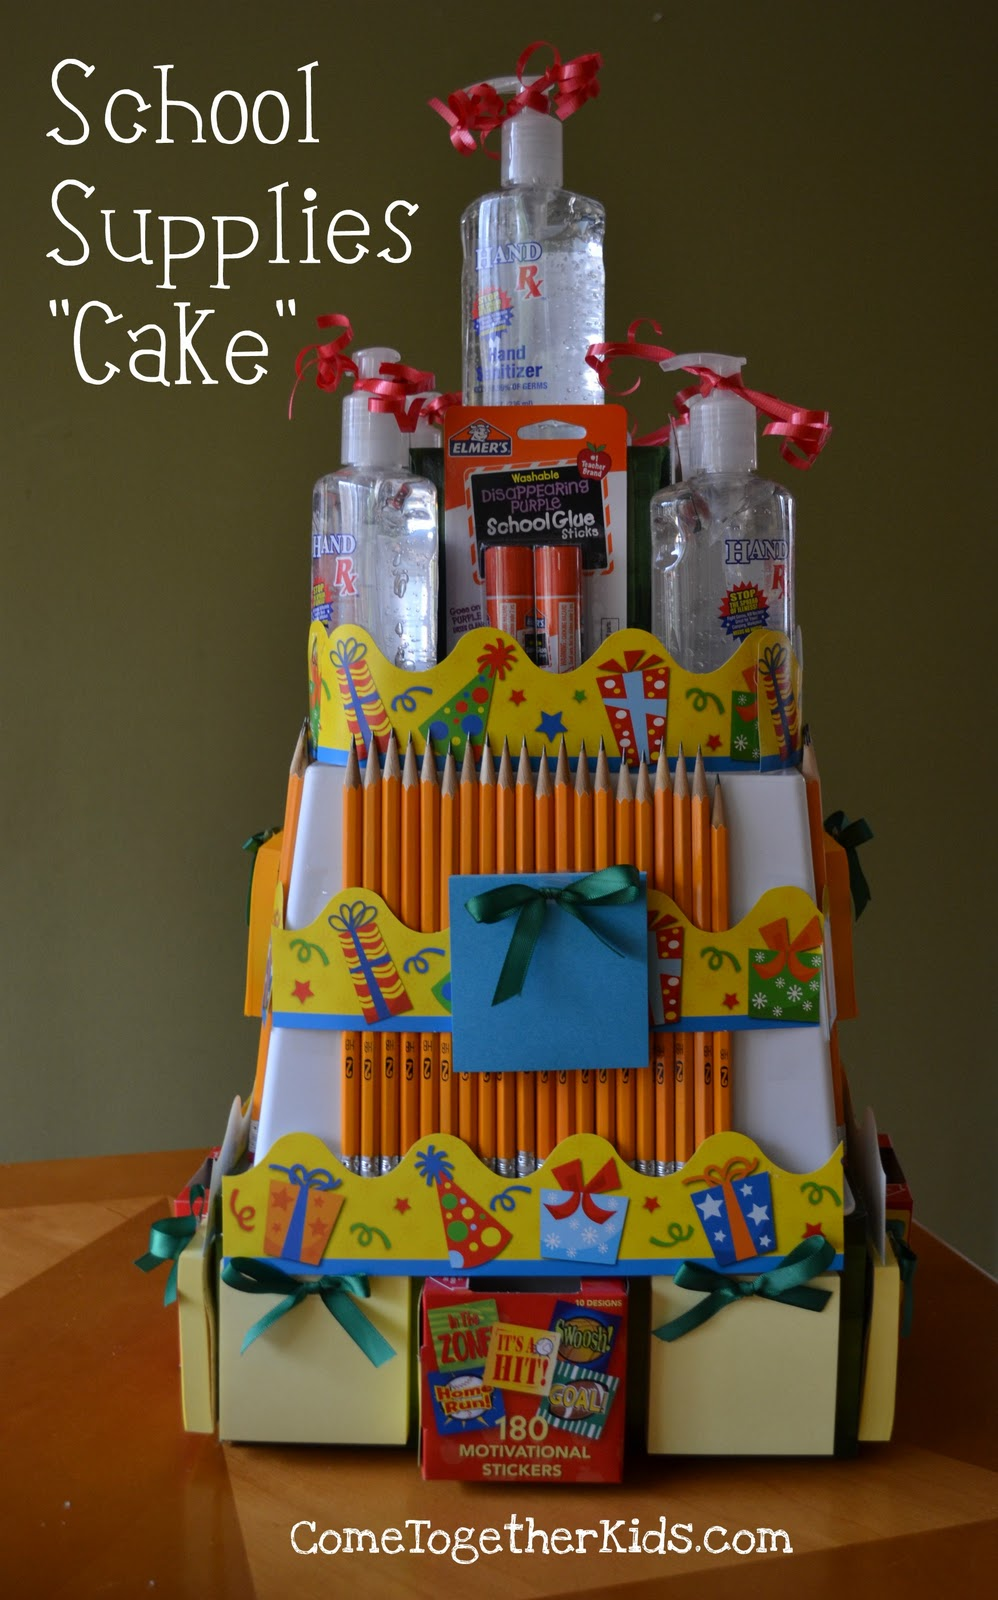 Best Cake Design Schools : Come Together Kids: School Supplies